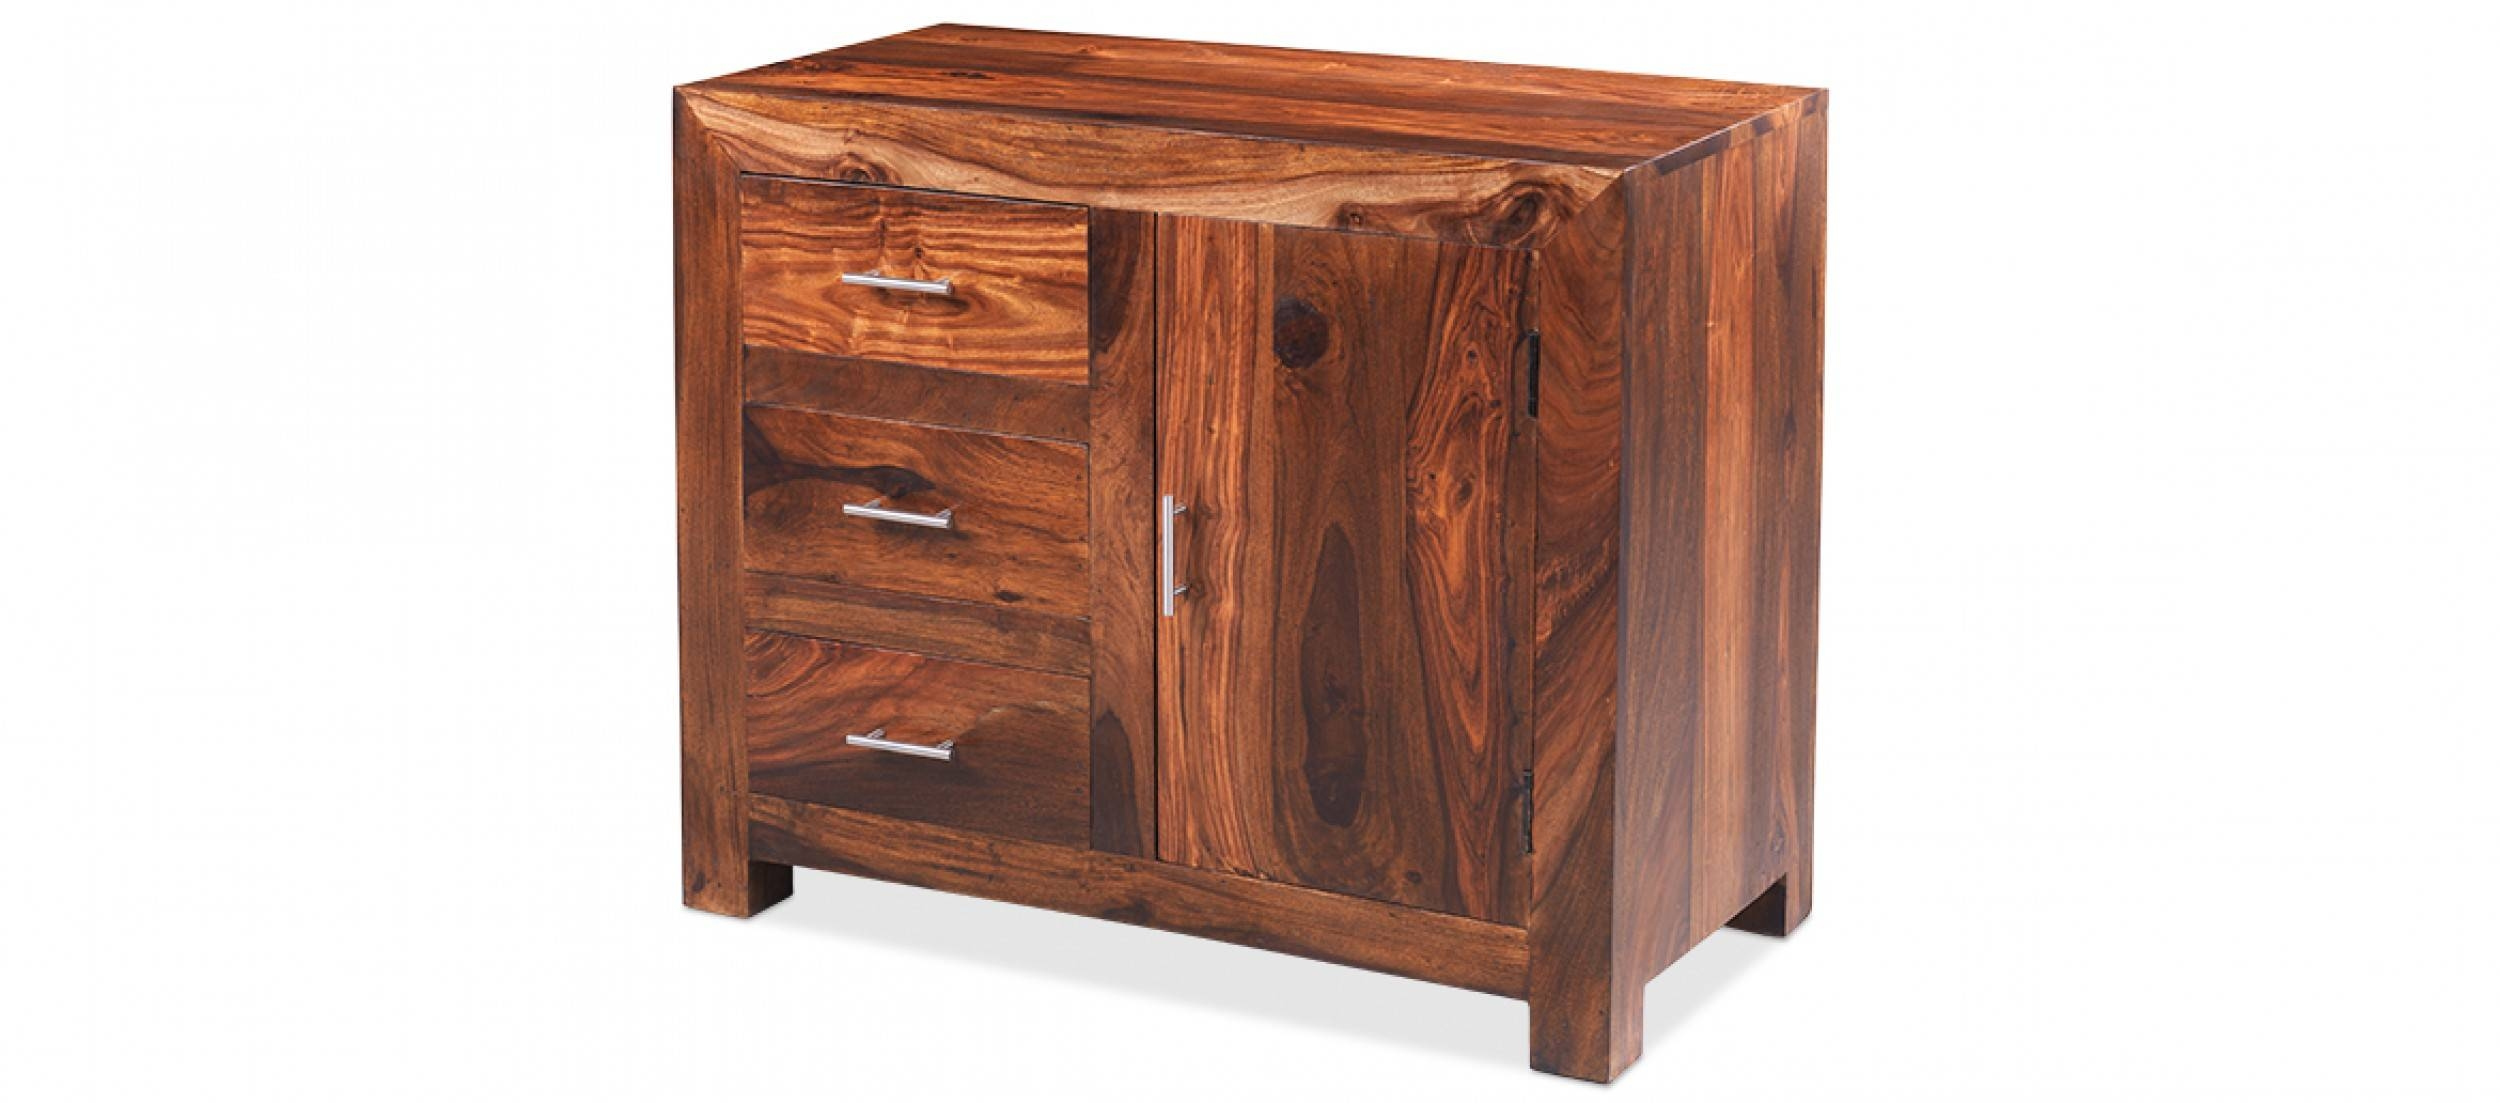 Cube Sheesham Small Sideboard | Quercus Living regarding Sheesham Sideboards (Image 6 of 30)